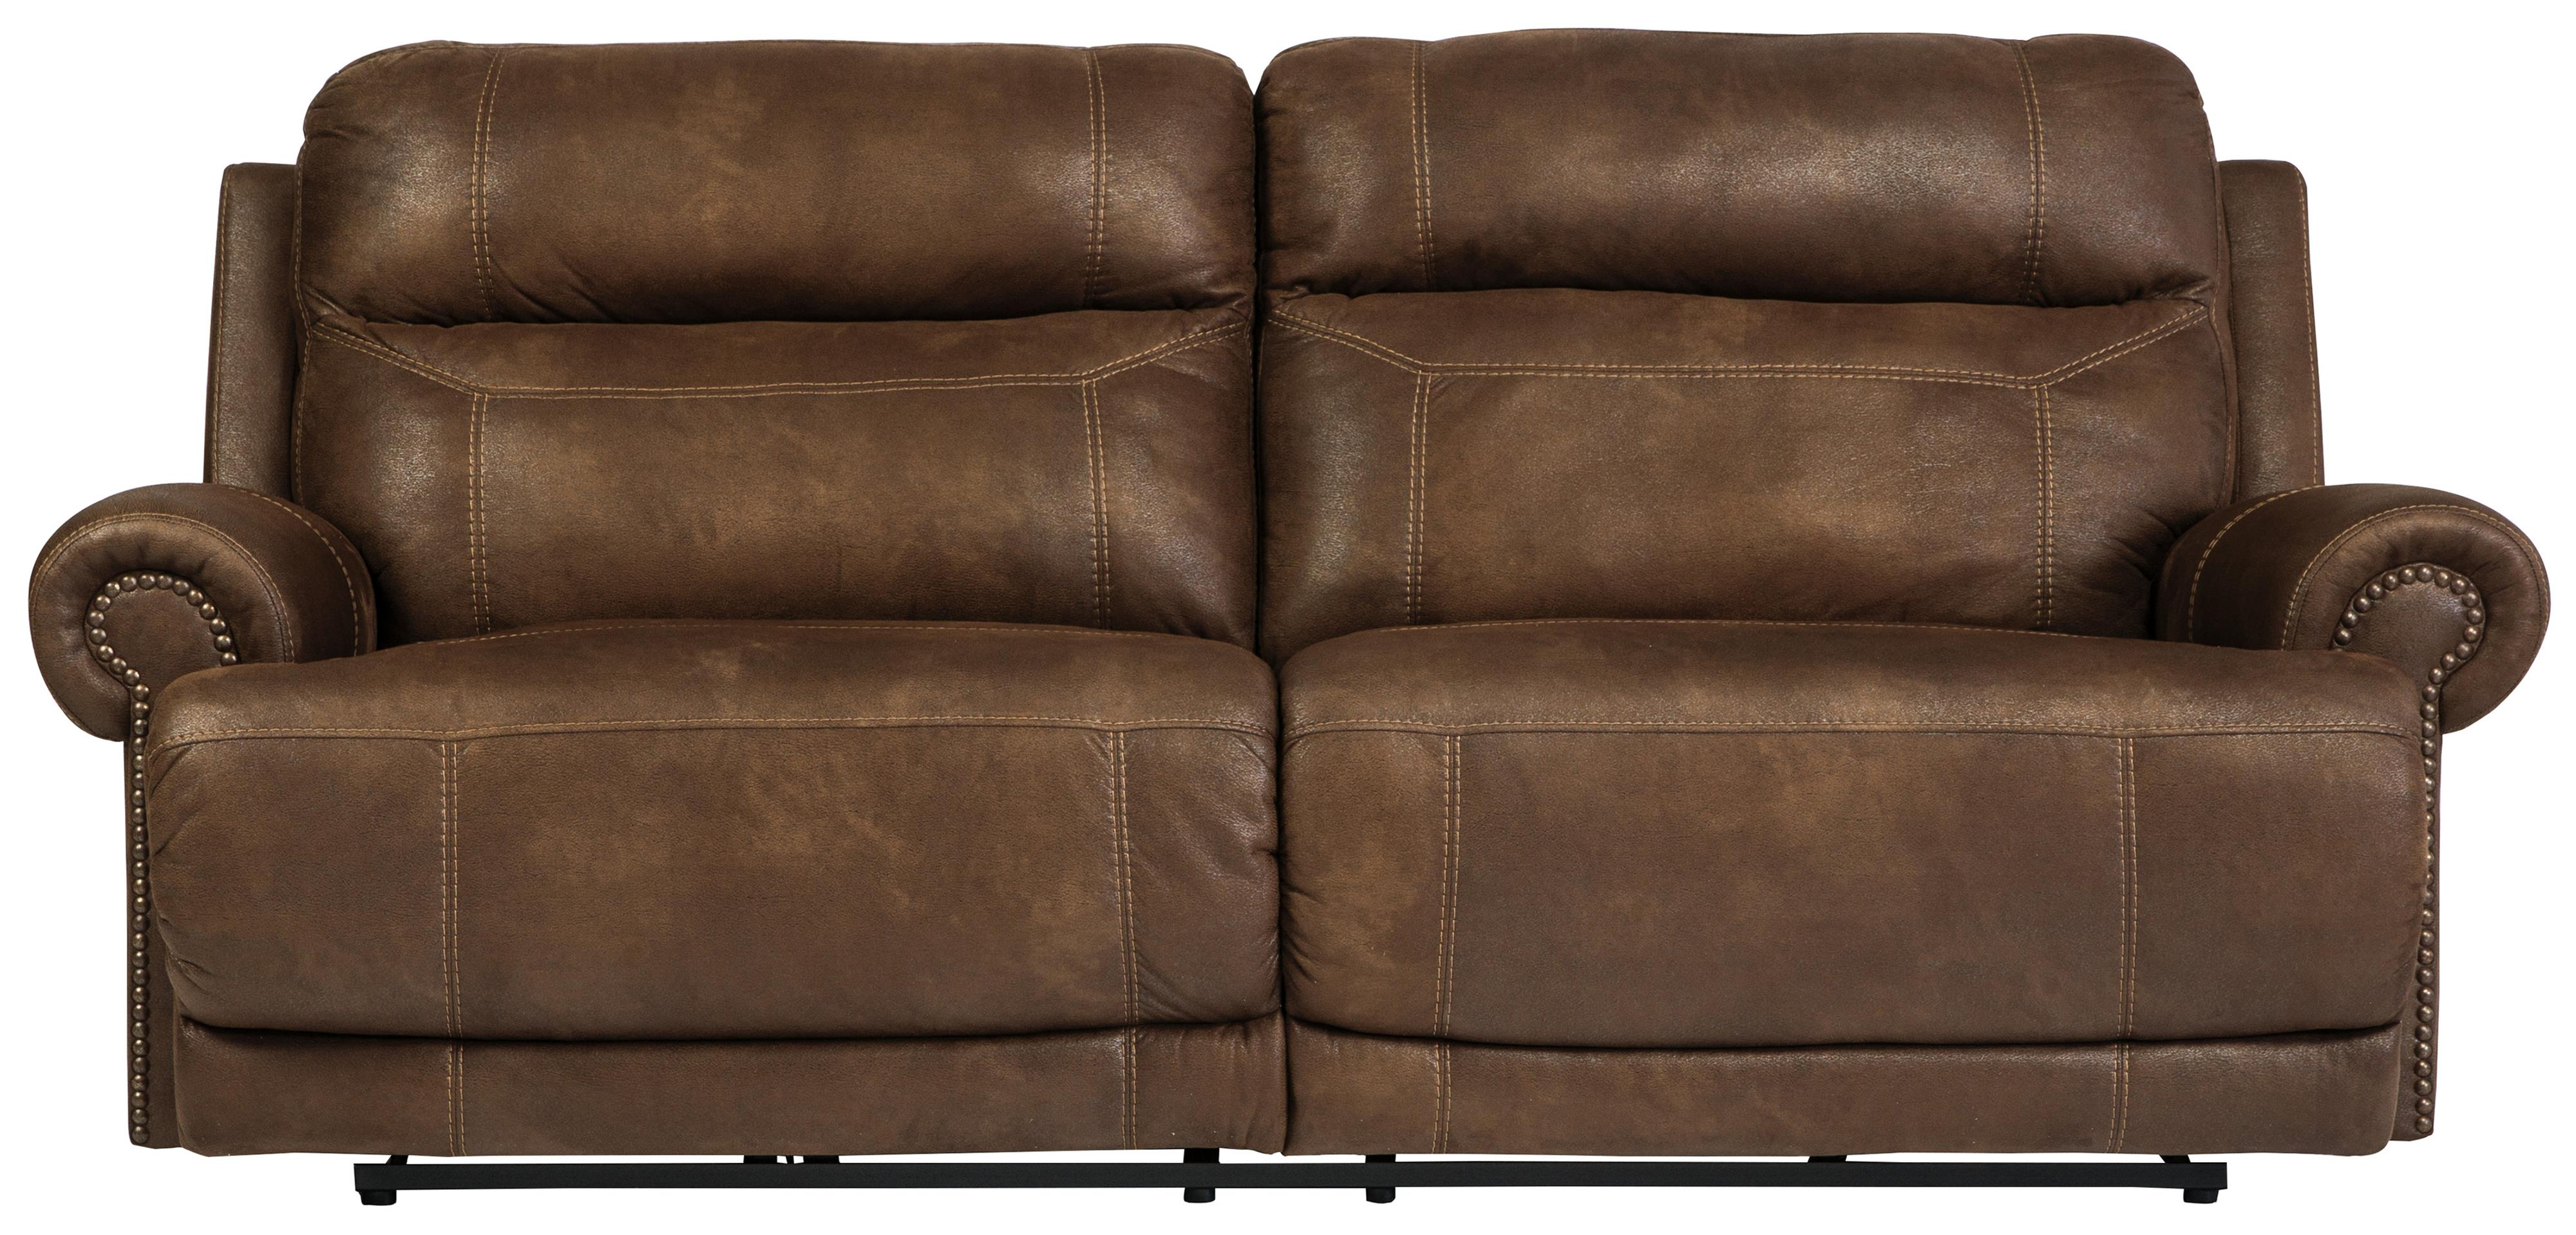 Signature Design by Ashley Austere - Brown 2 Seat Reclining Power Sofa - Item Number: 3840047